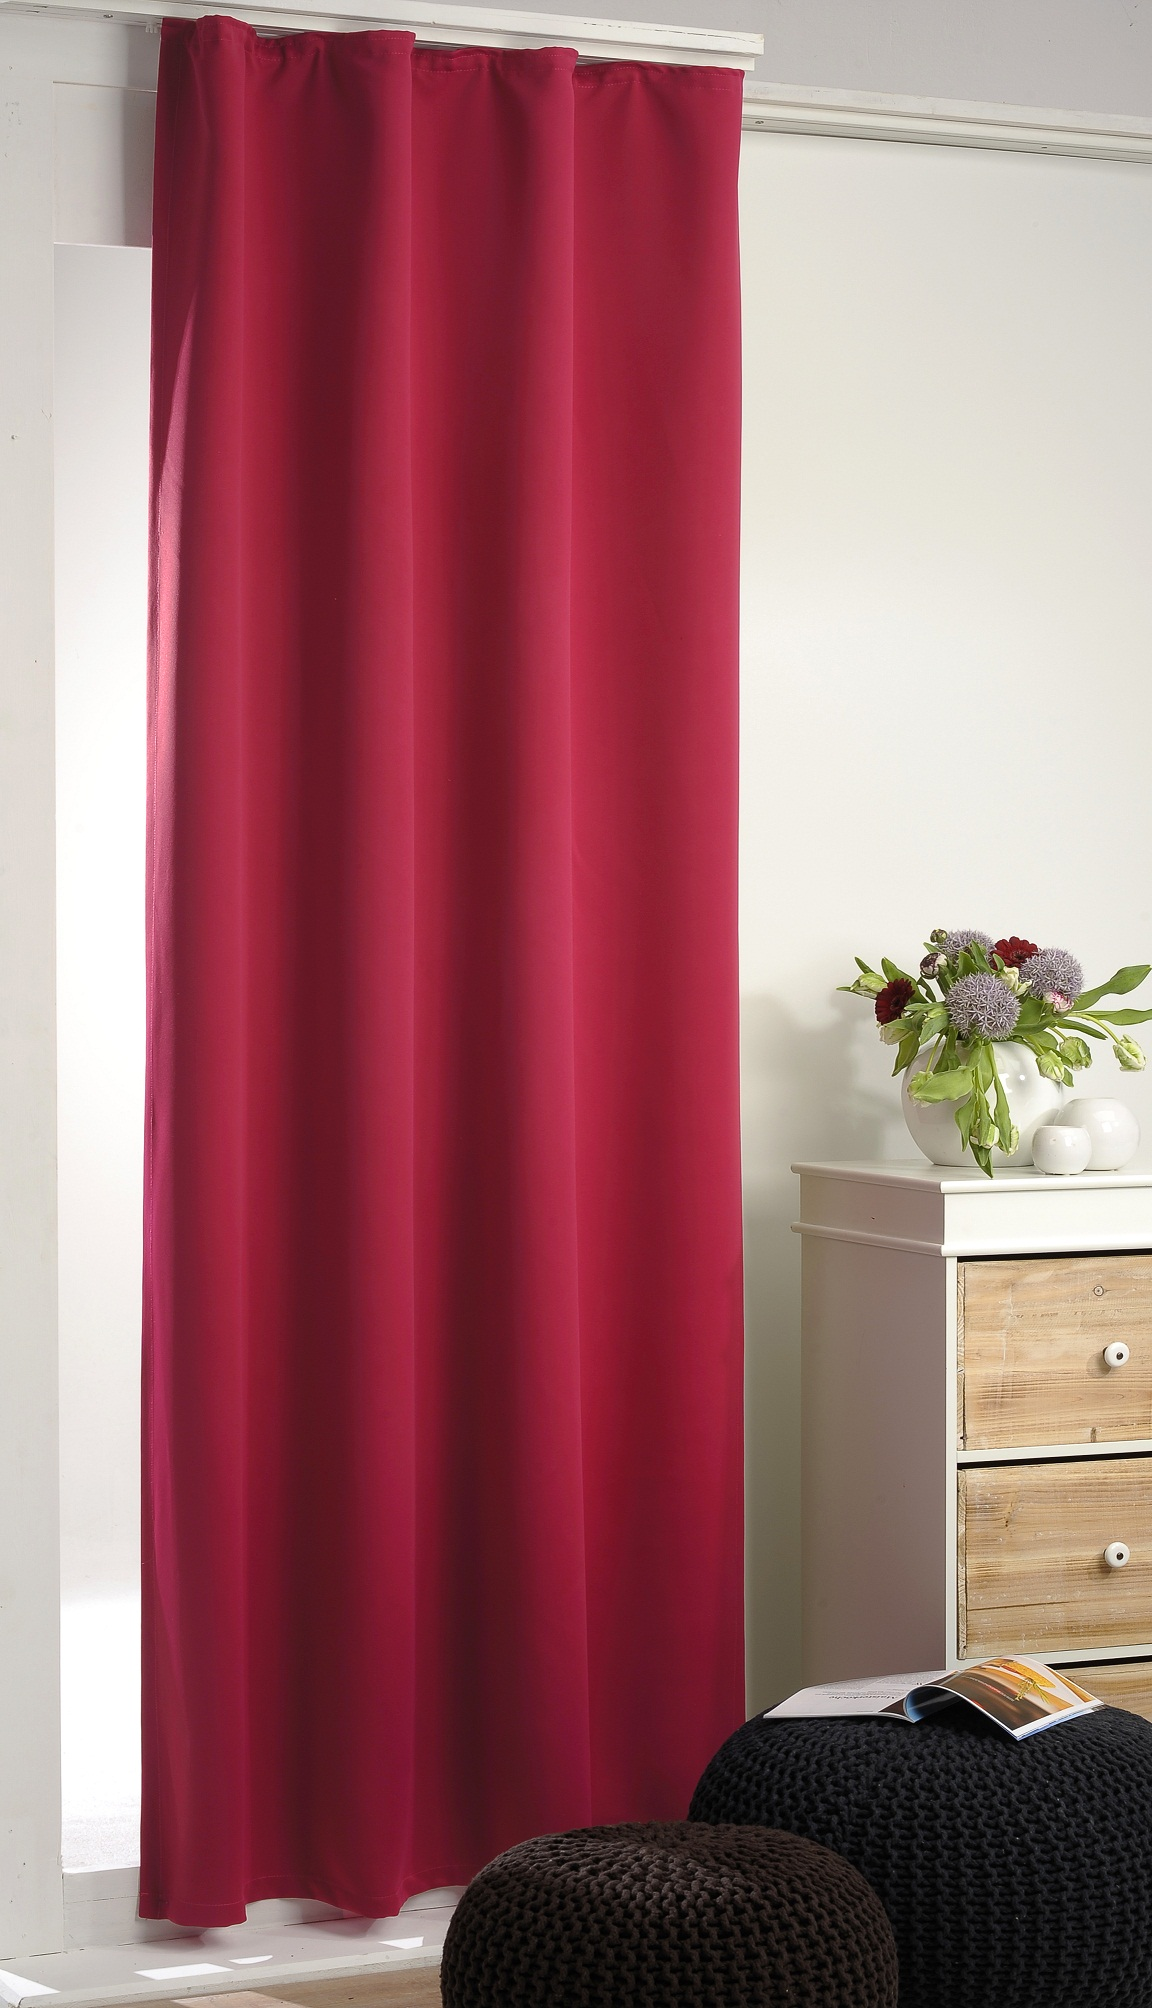 darkening curtain thermal curtain opaque curtain drapes scarf band eyelets. Black Bedroom Furniture Sets. Home Design Ideas